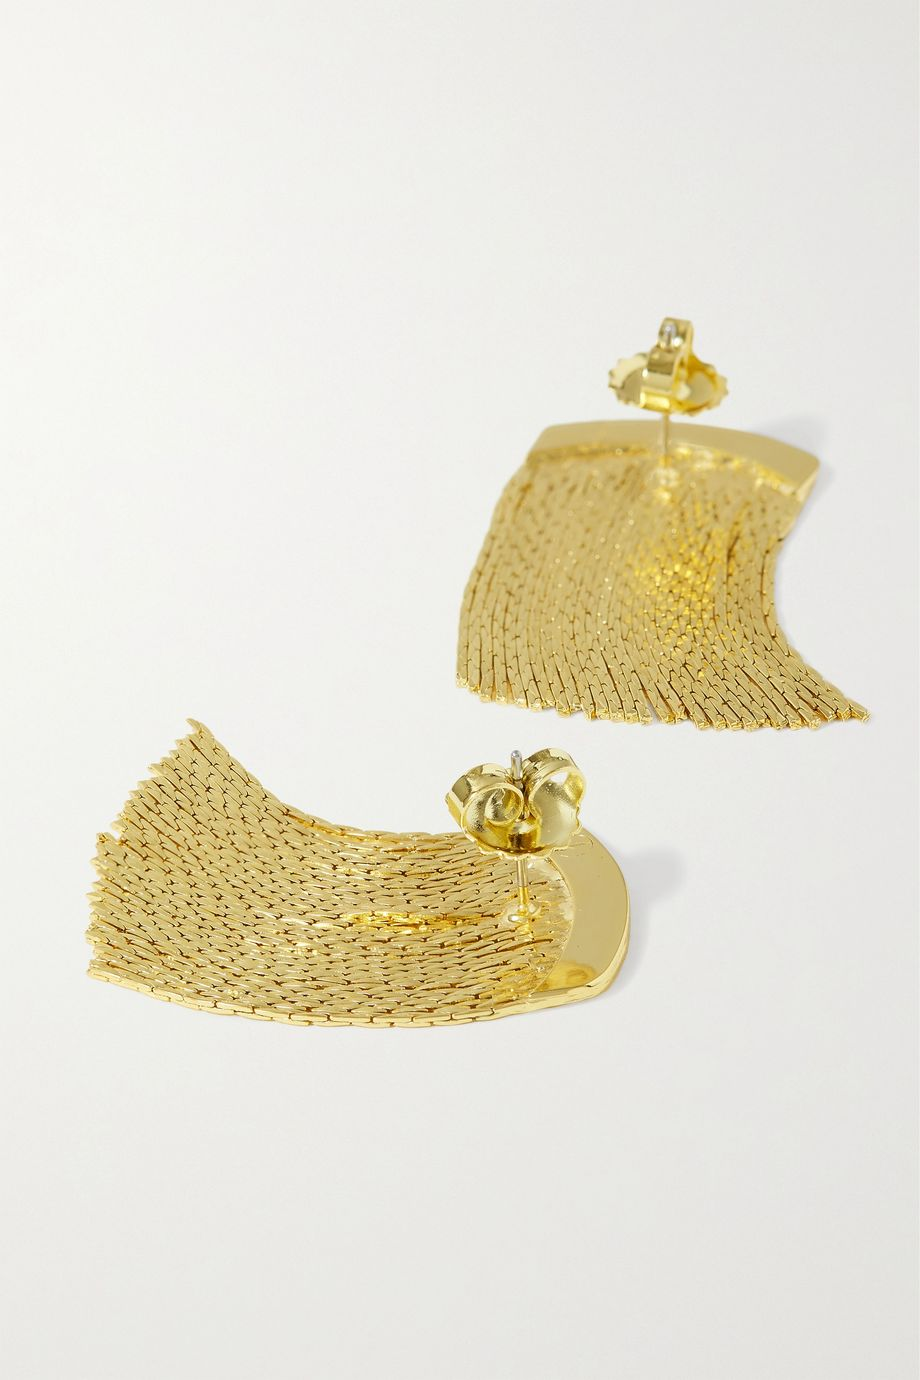 Anissa Kermiche Fil d'Or gold-plated earrings